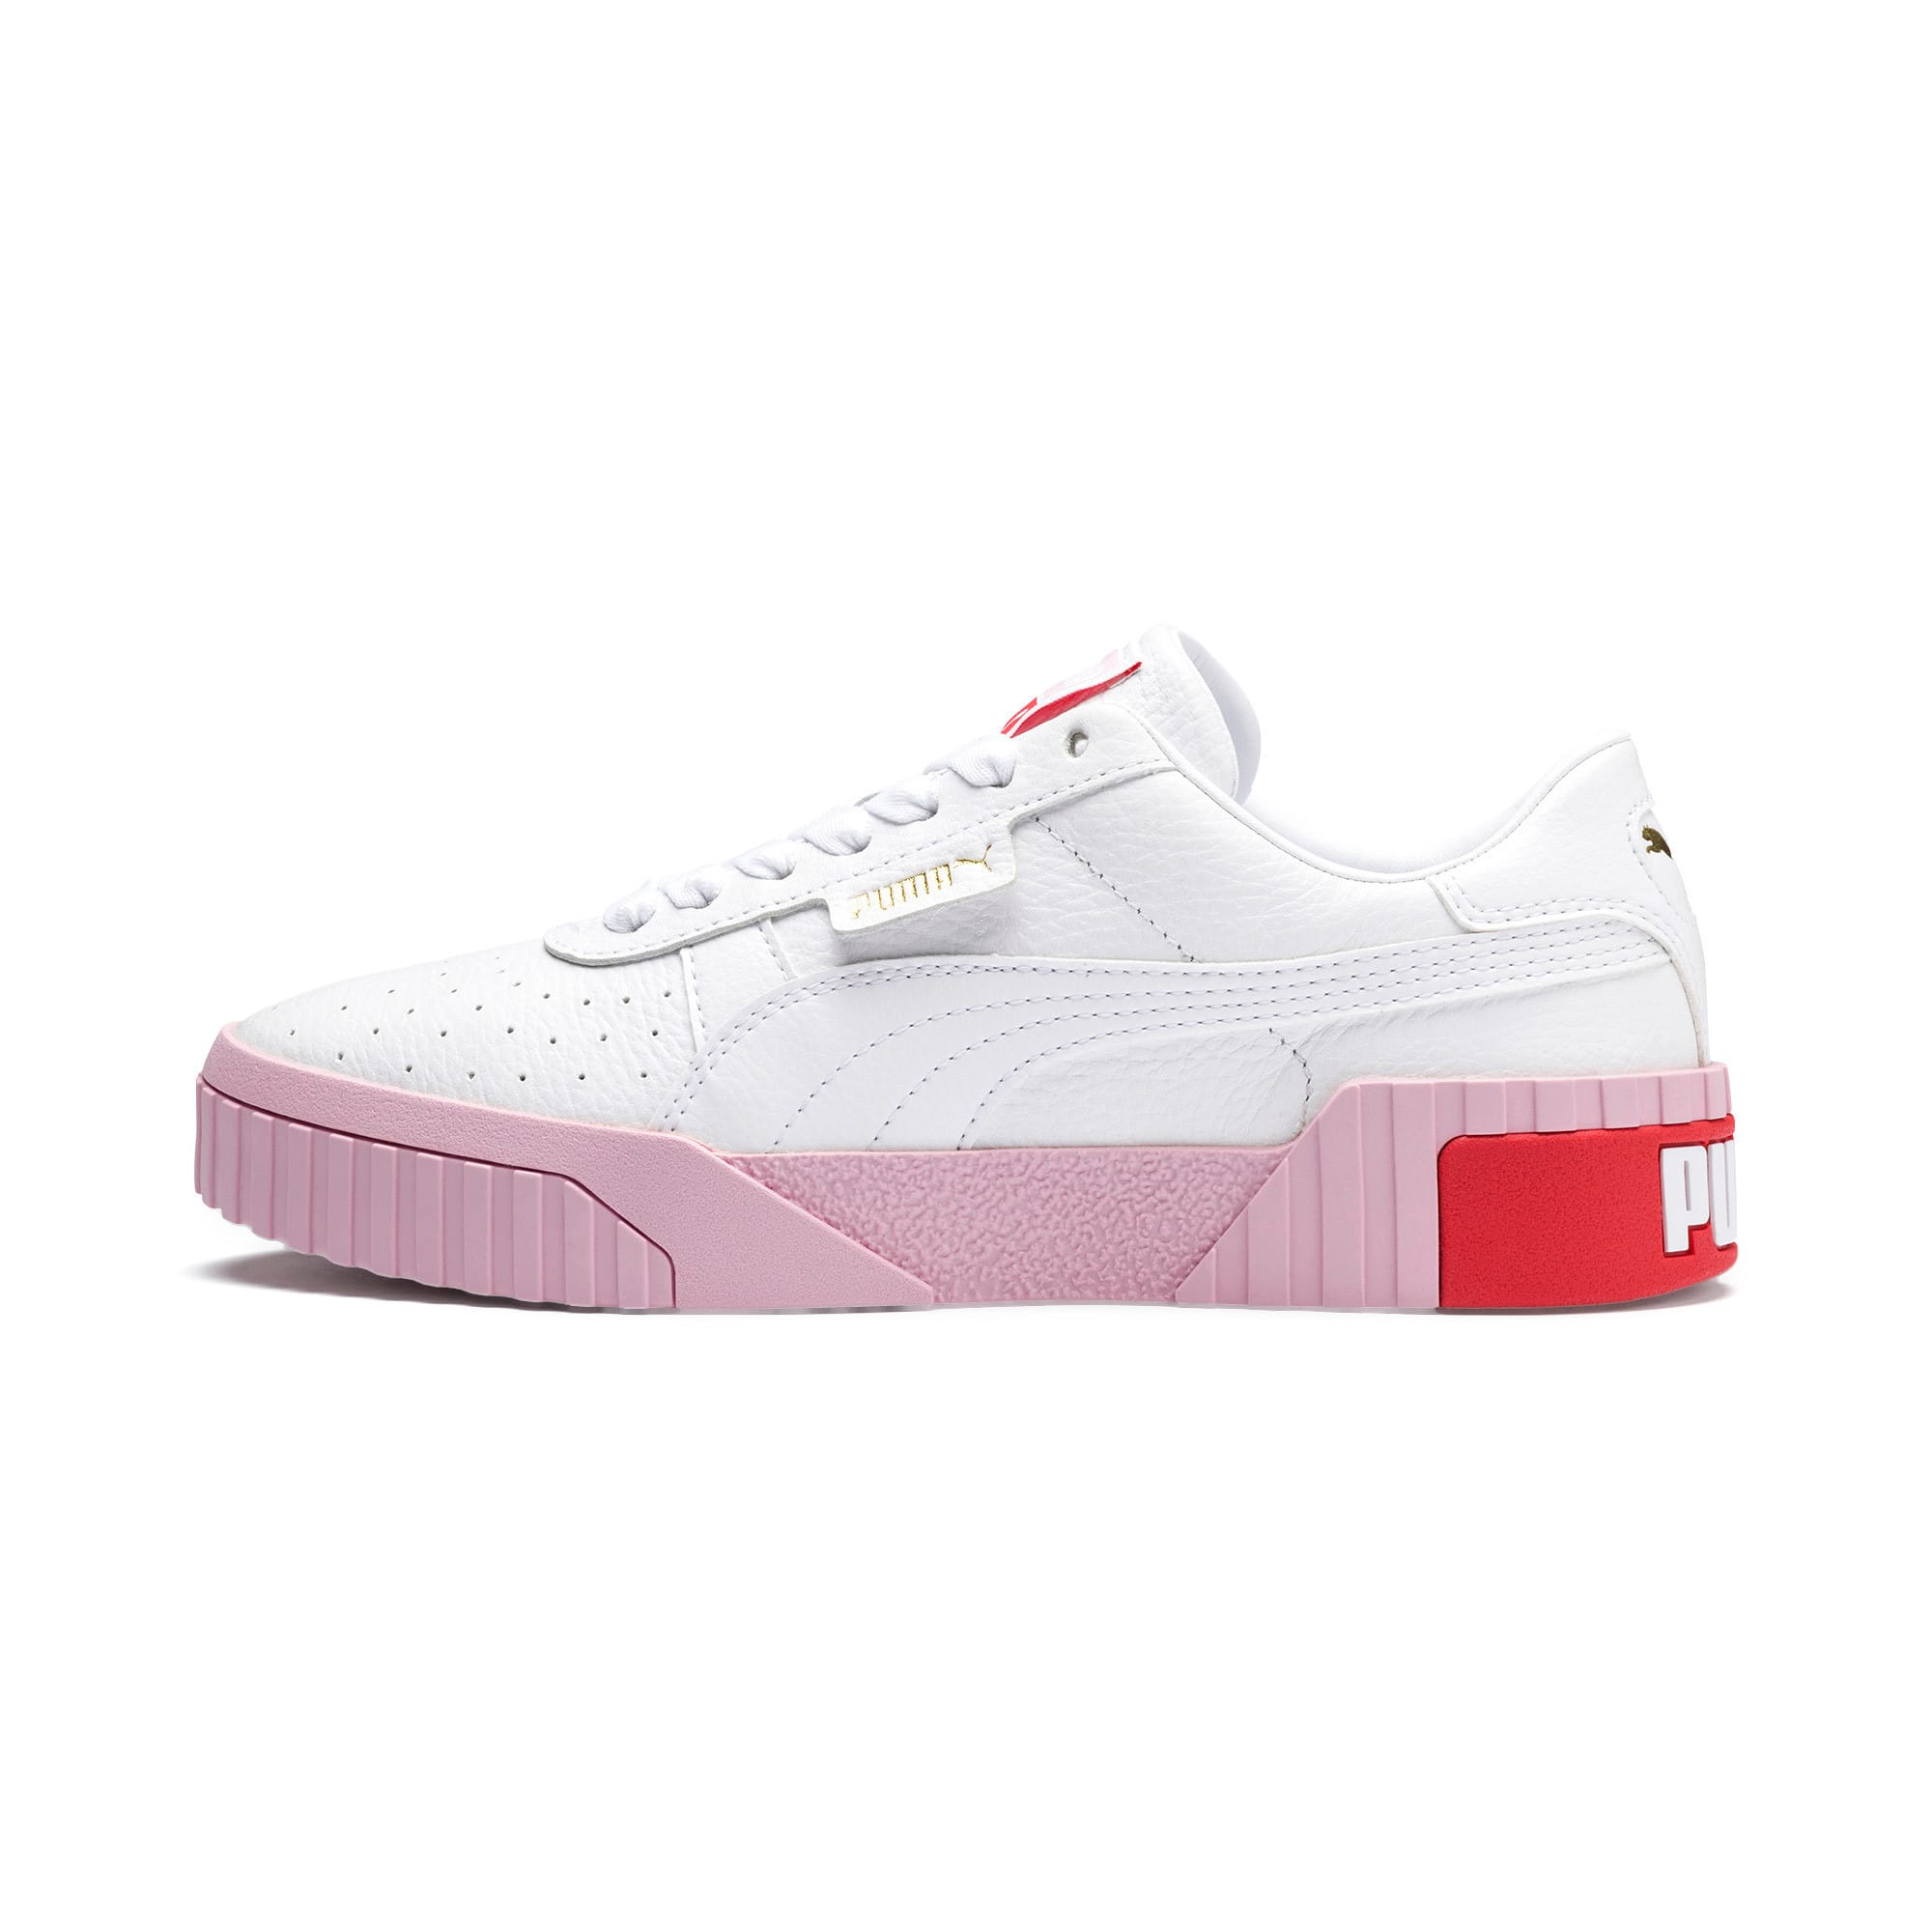 Thumbnail 1 of Cali Women's Trainers, Puma White-Pale Pink, medium